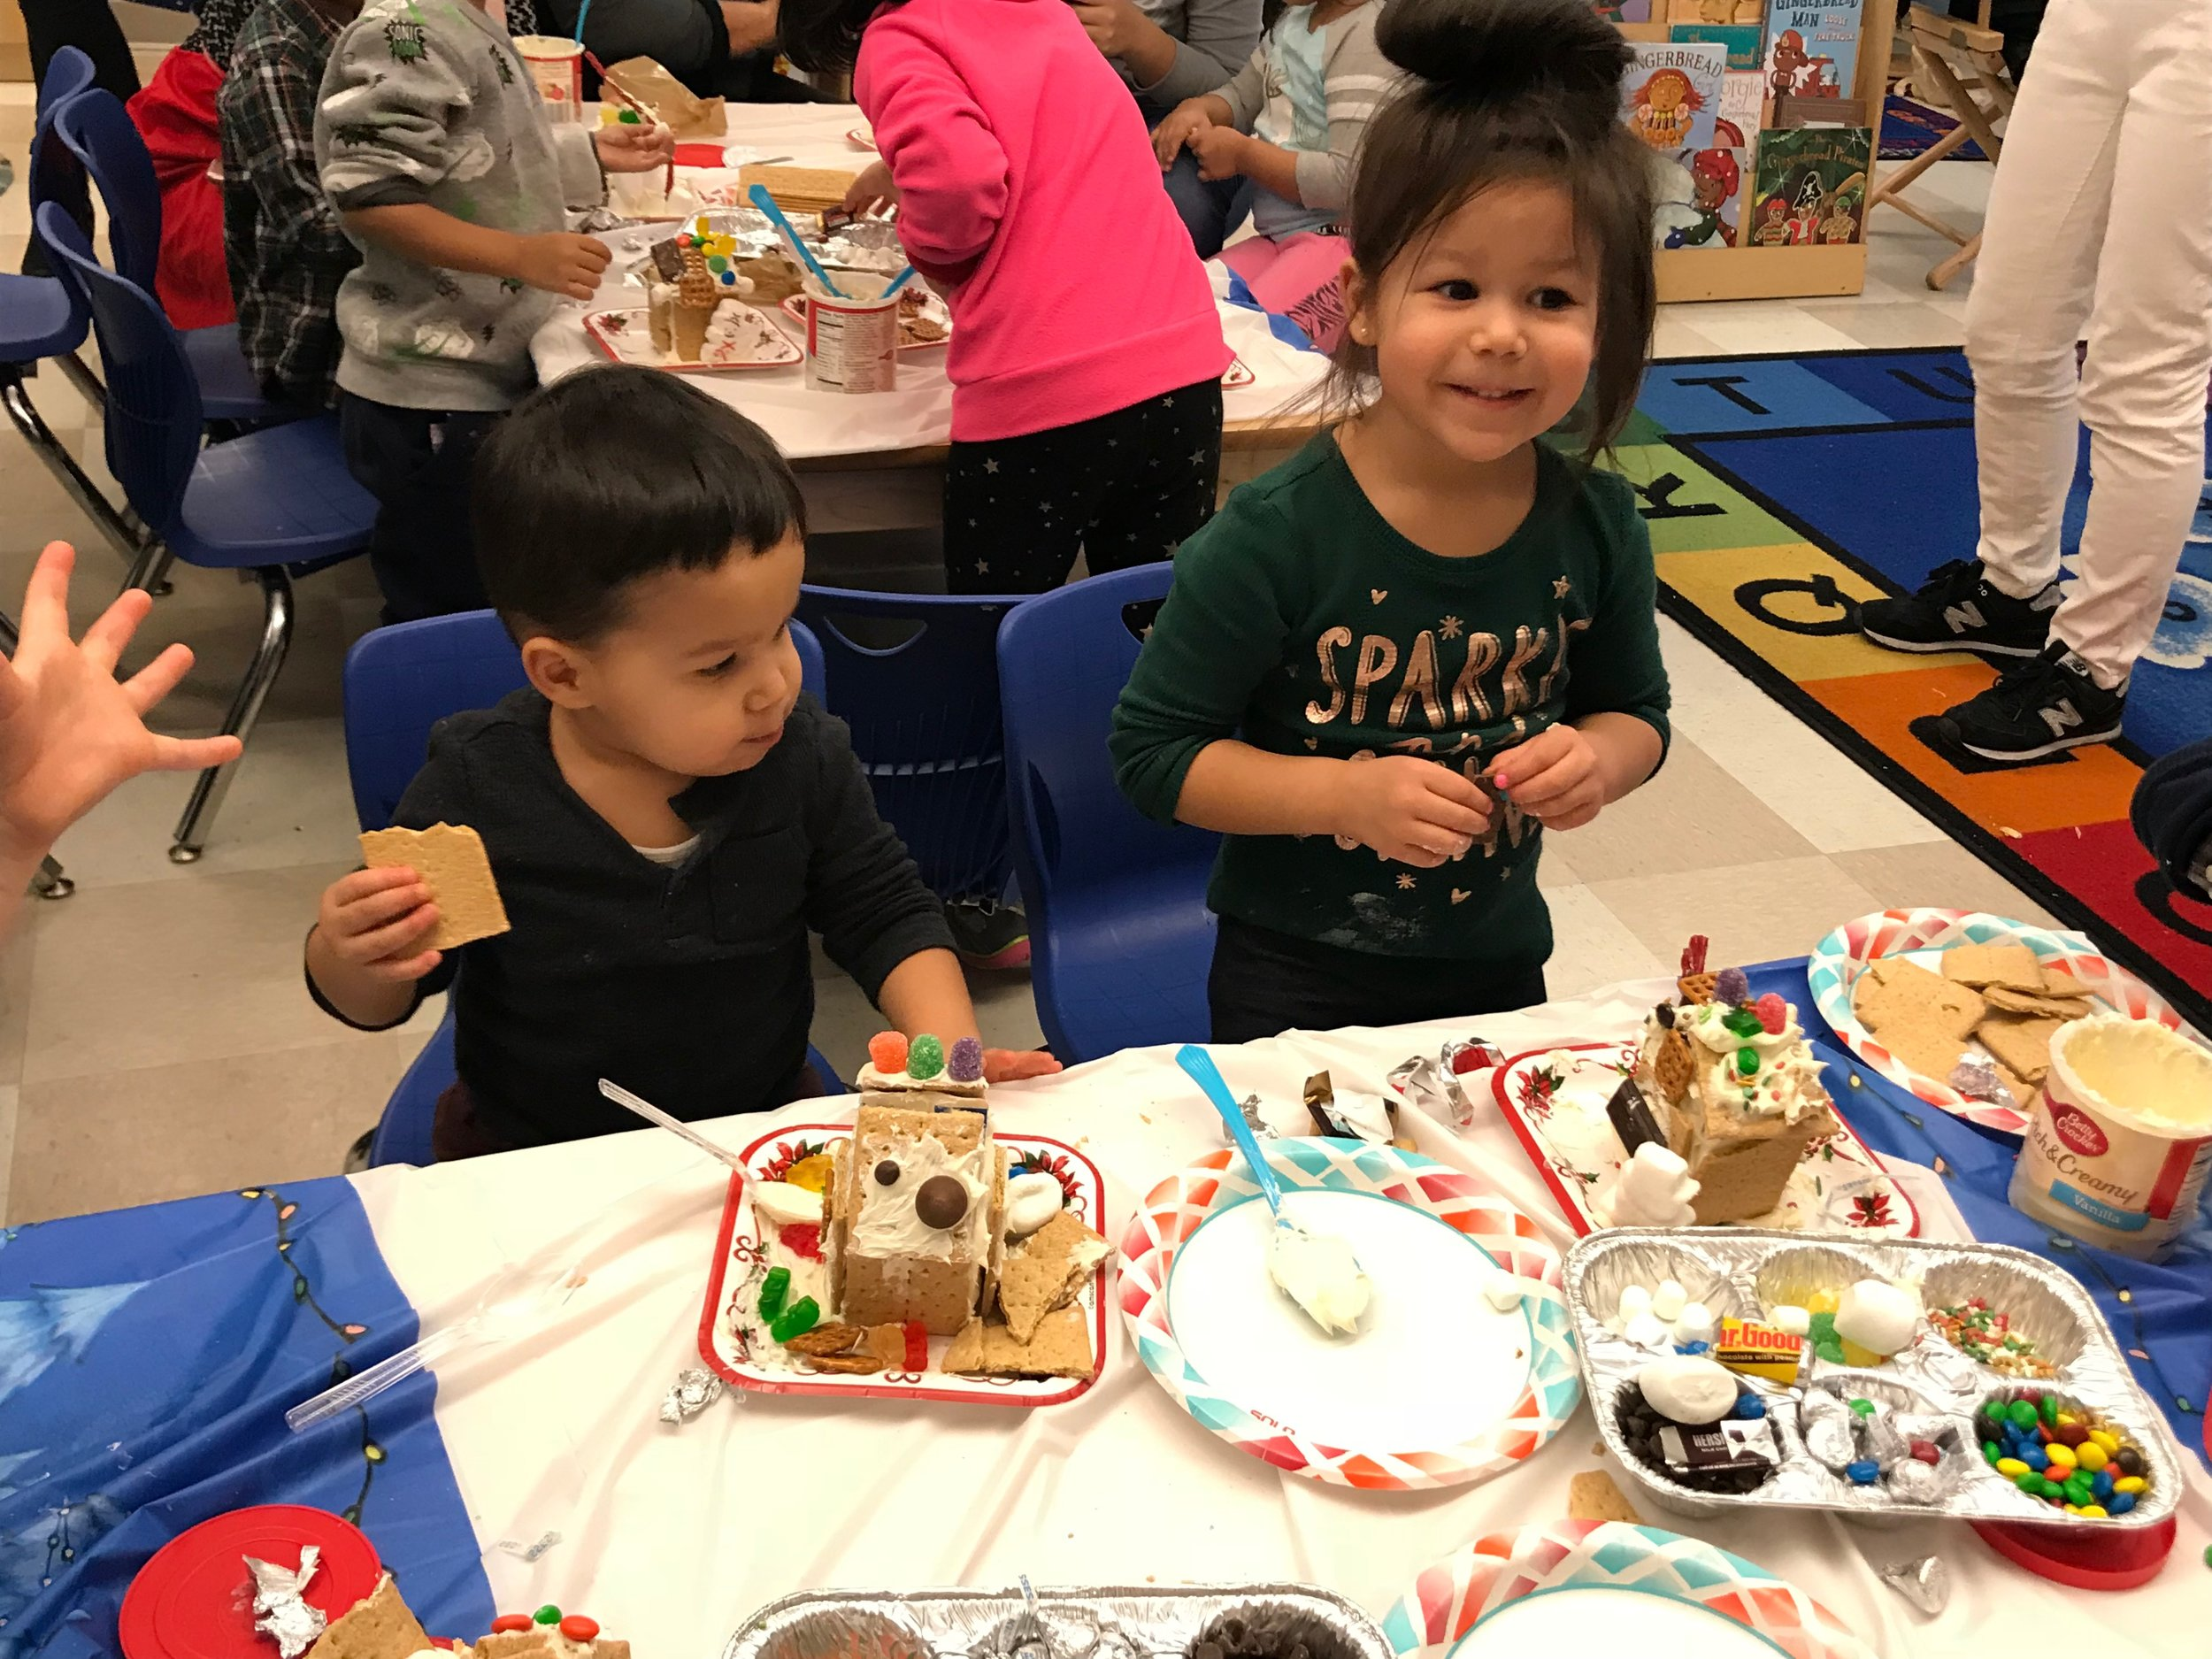 Gingerbread house making!